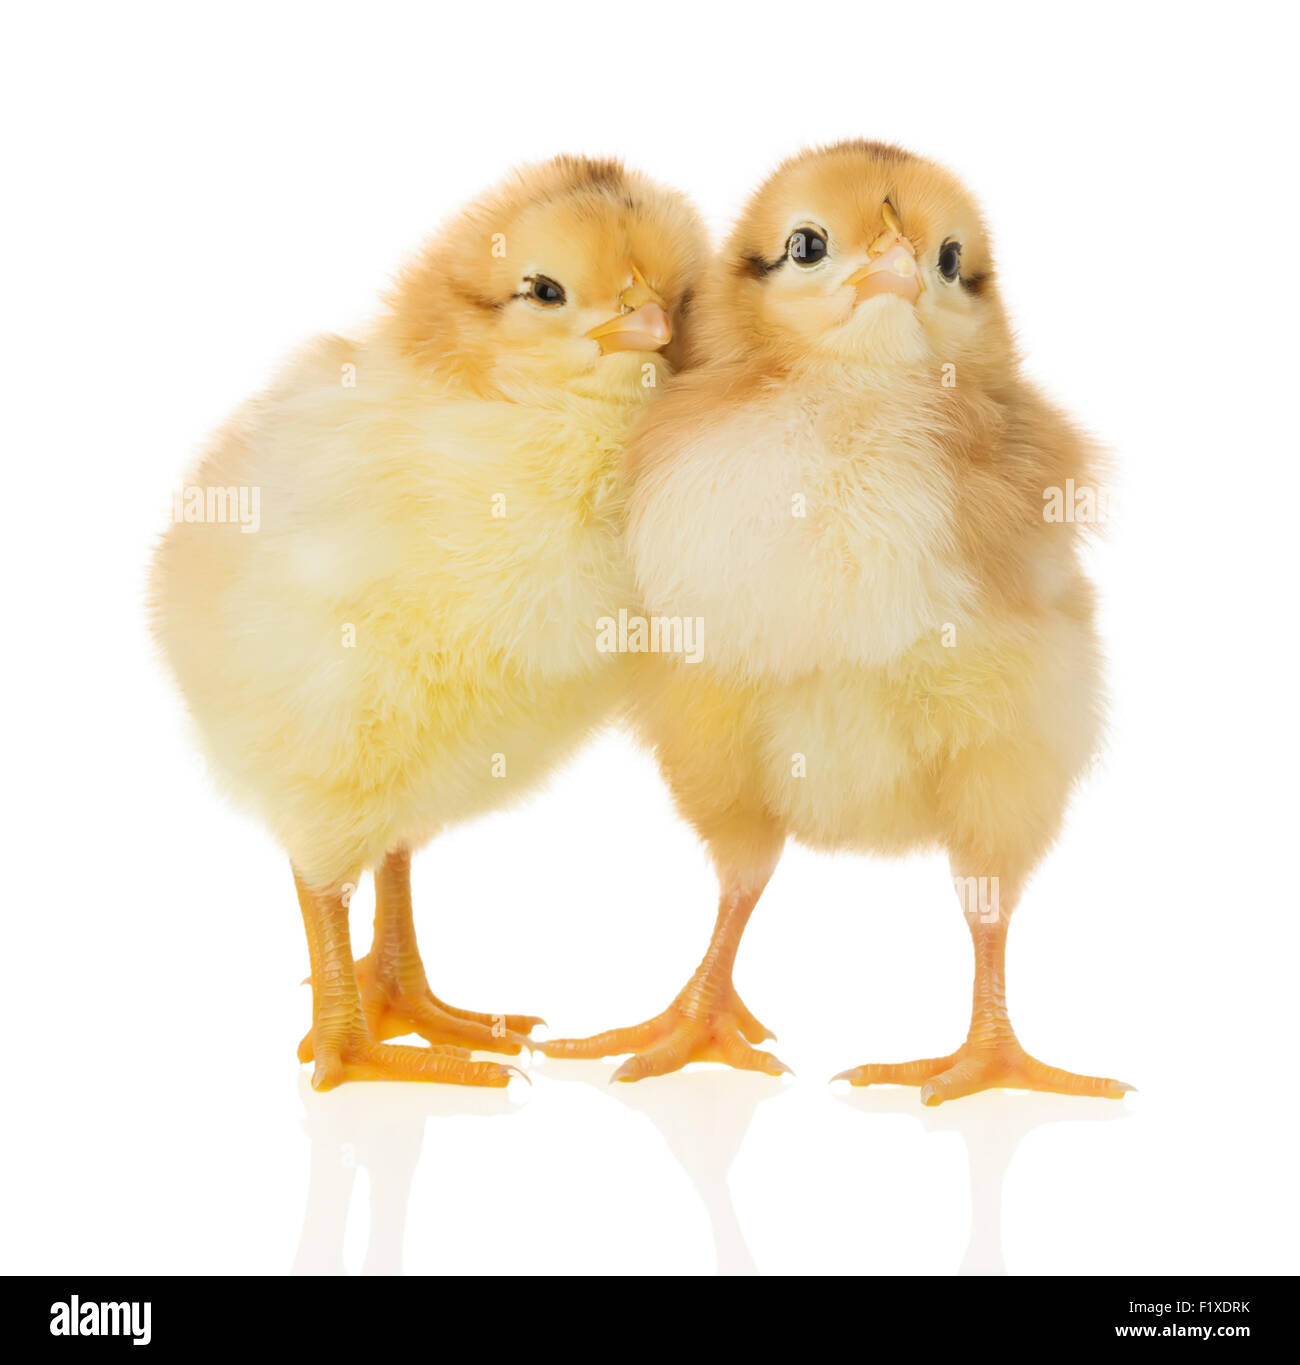 chickens on the white background. - Stock Image